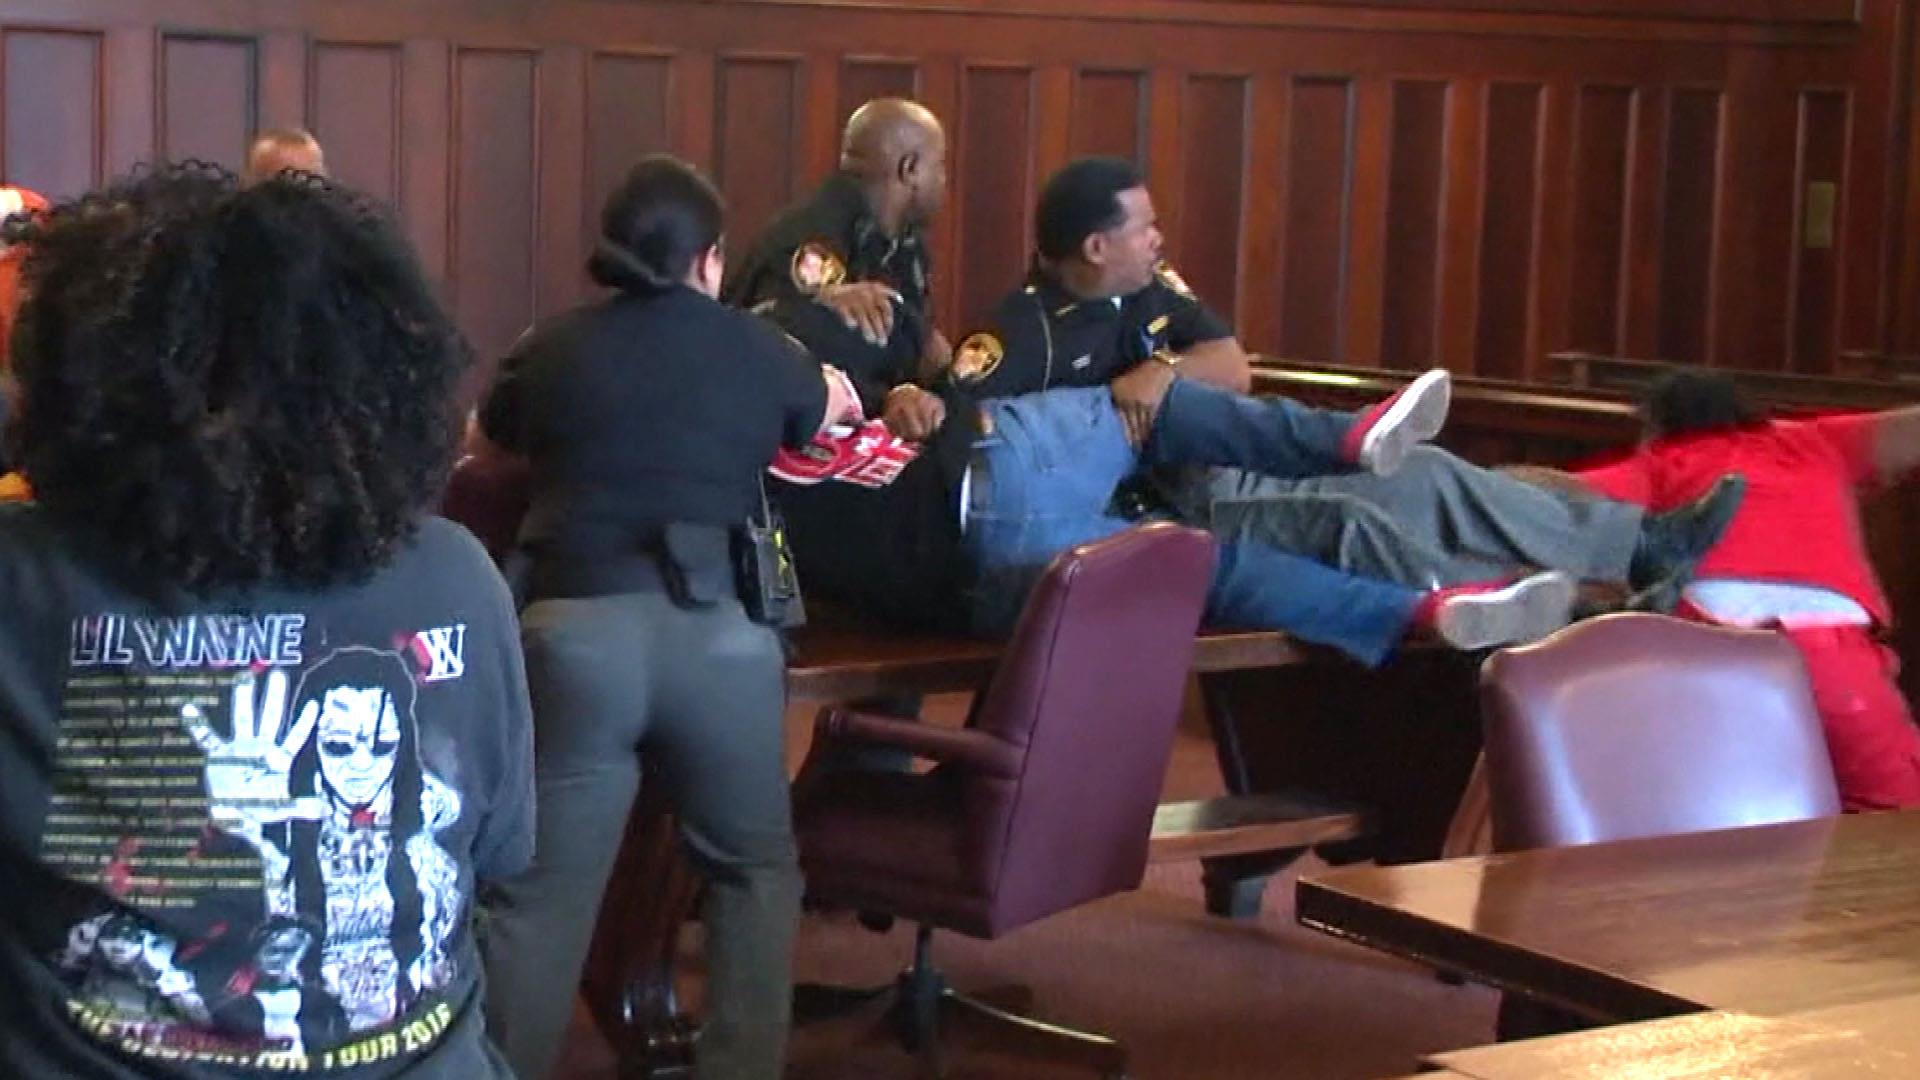 Murder victim's sons jump their mother's killer at hearing, attack captured on video